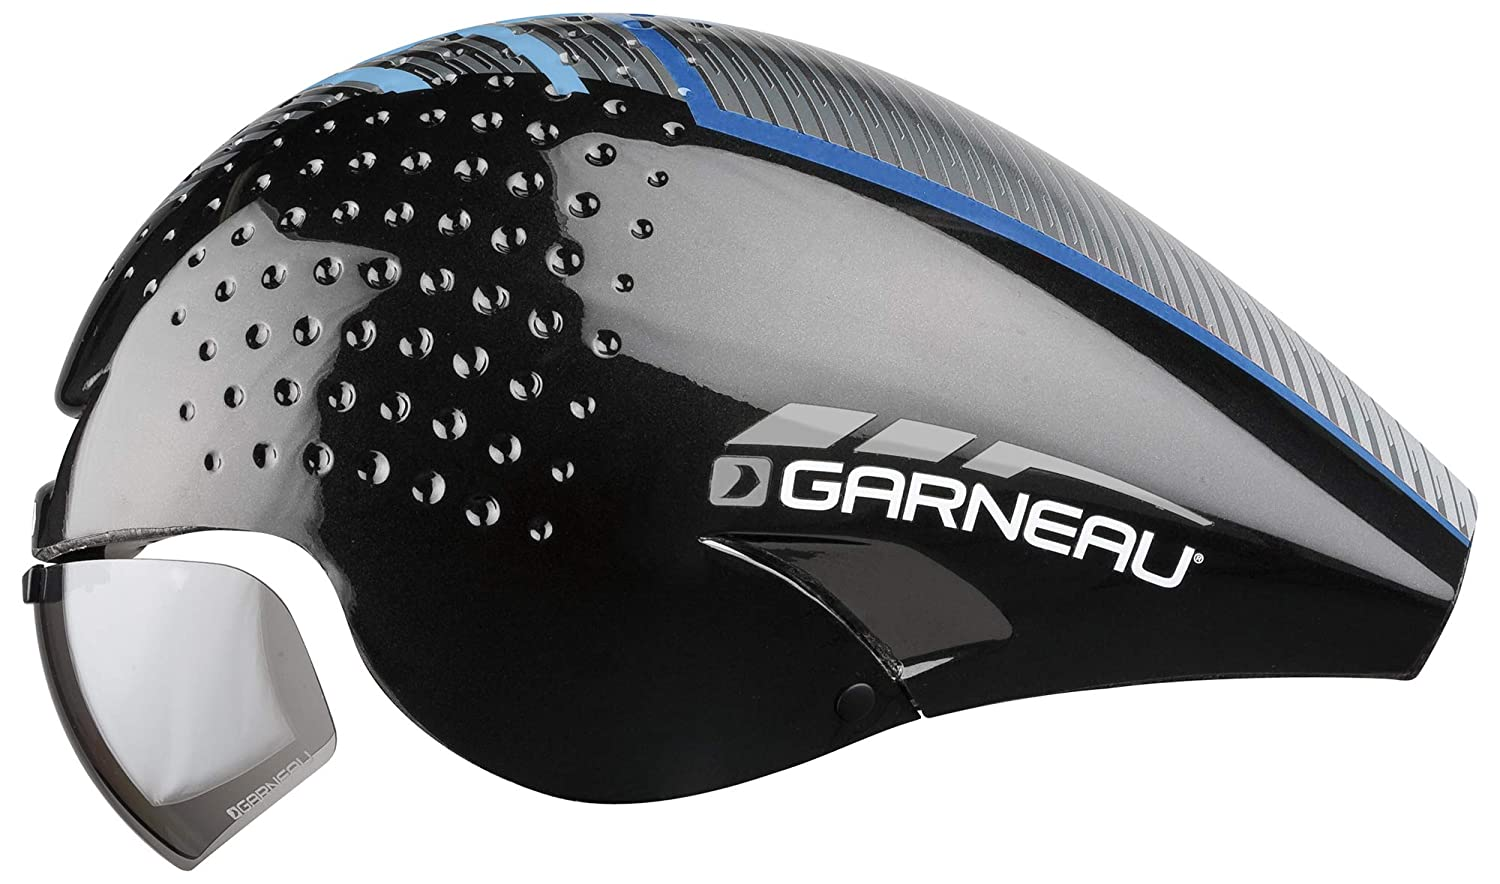 Louis Garneau LG P-09 Aerodynamic, CPSC Safety Certified, TT Bike Helmet, Black/Blue, Medium